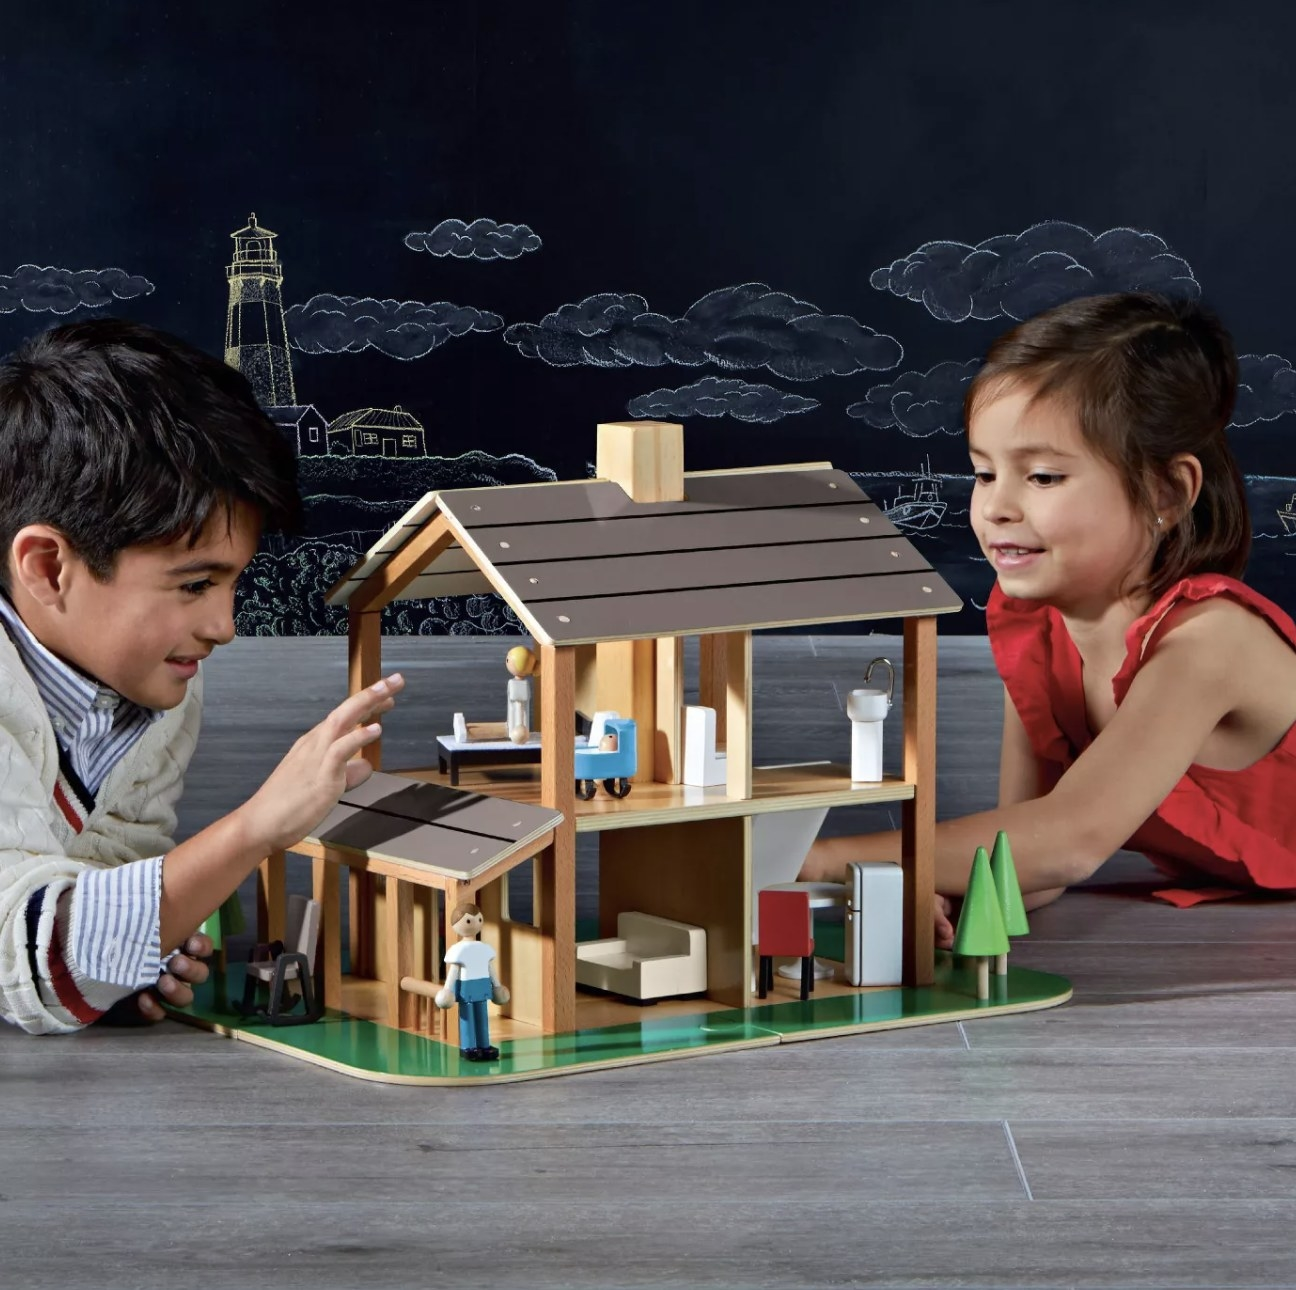 Two people playing with a wooden dollhouse